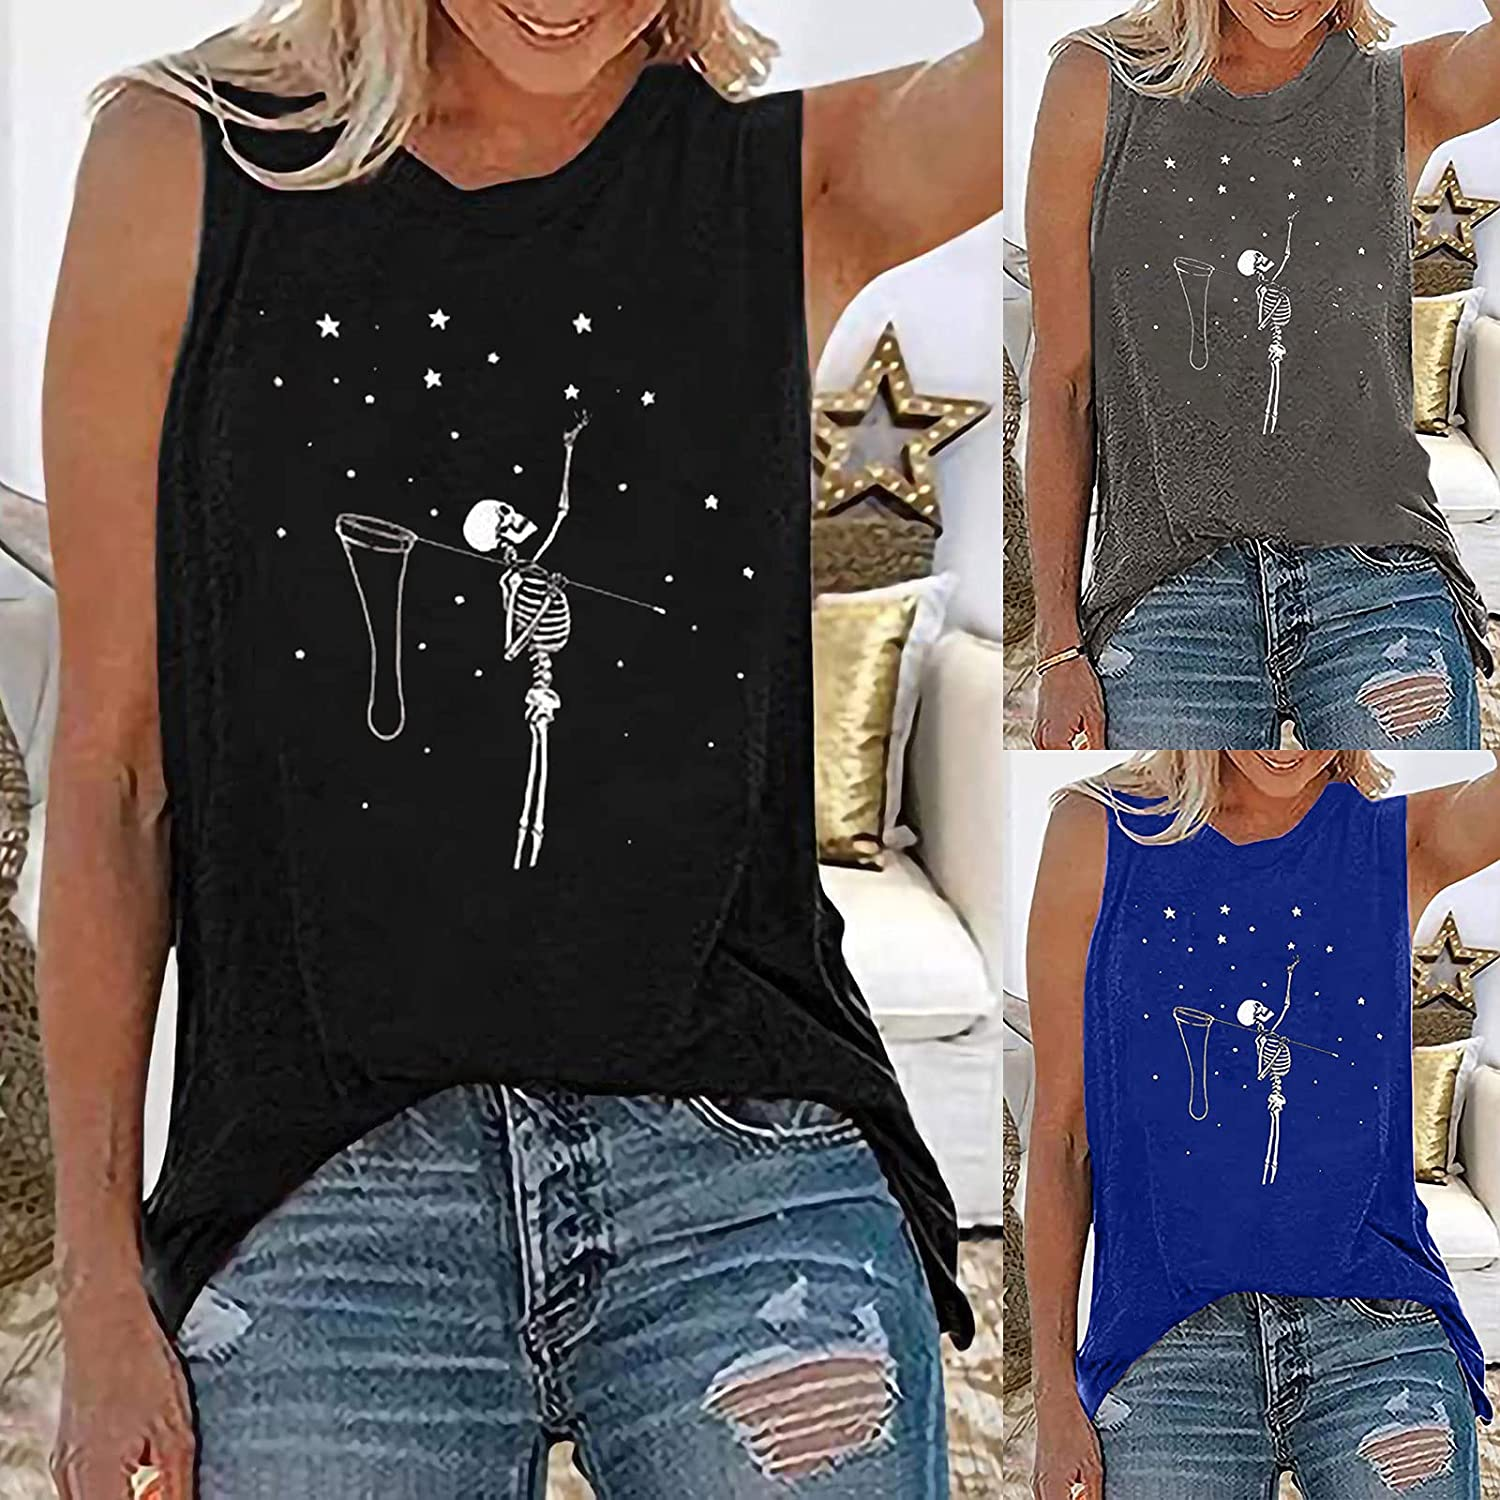 Womens Casual Flowy Tunic Blouse Tops Loose Fit Printing Sleeve Shirt Halter Neck Tank Tops